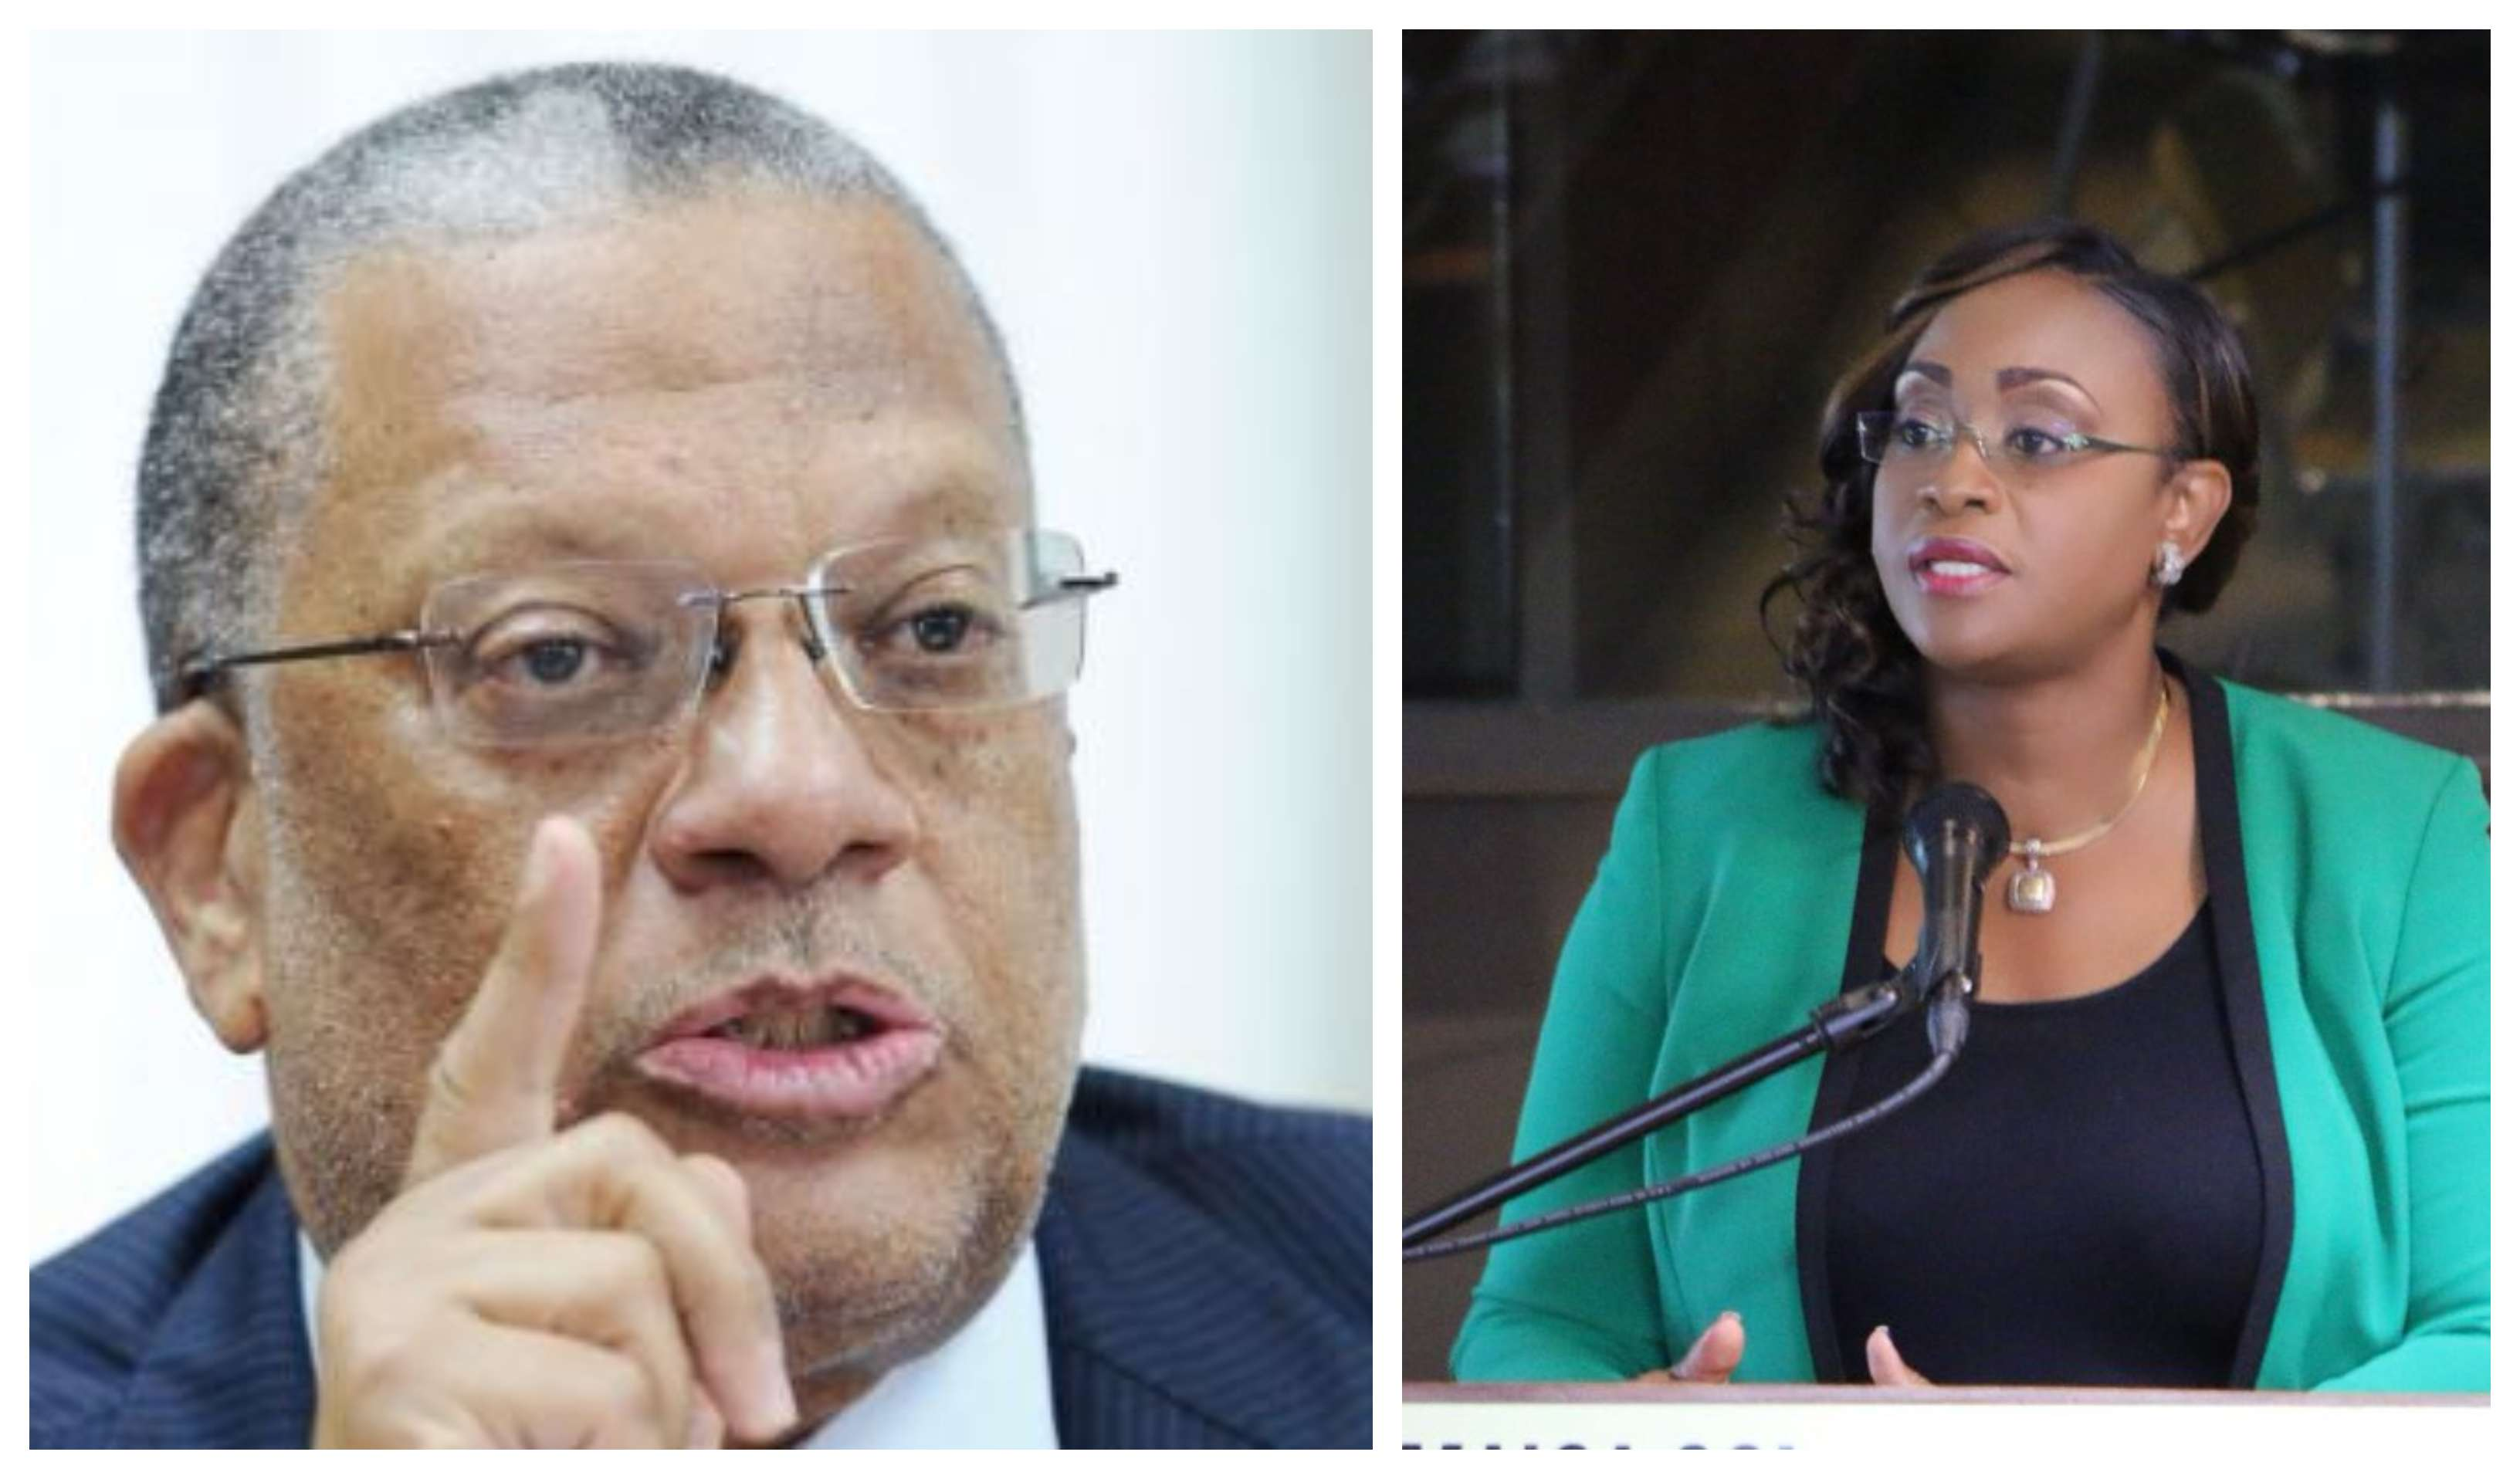 Juliet Holness Jabs Phillips Over Intellectual Capacity, Image